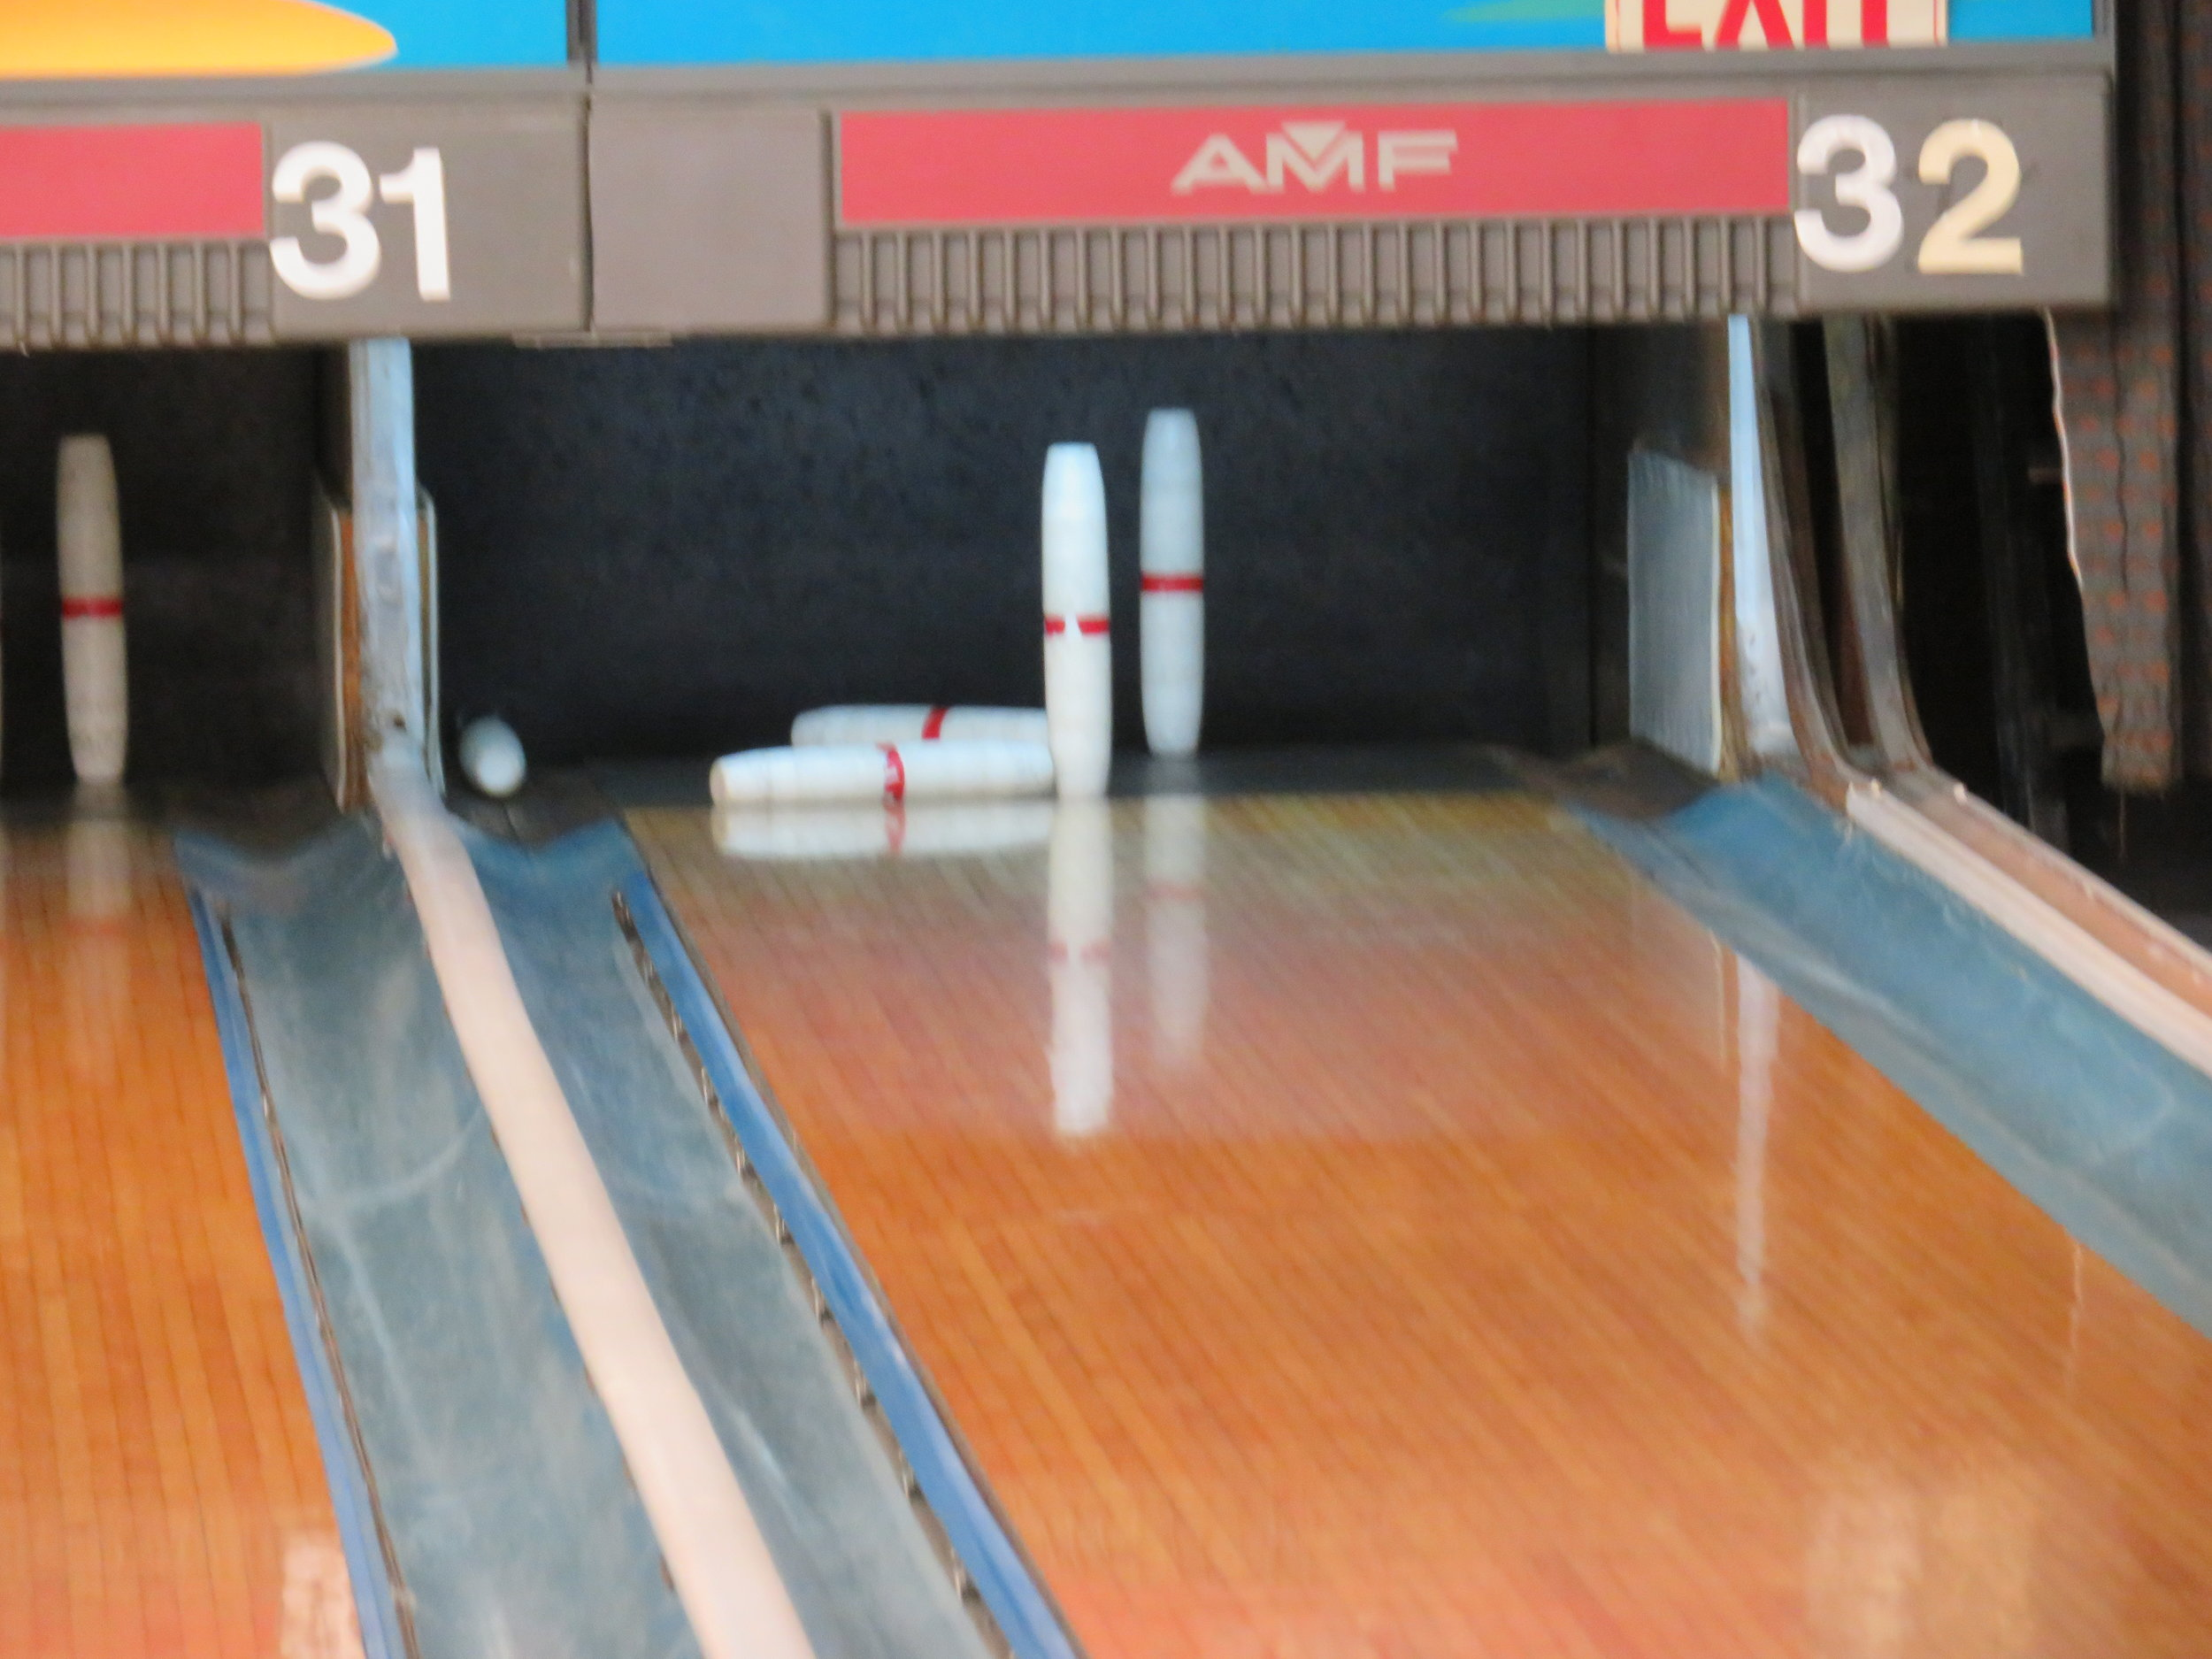 Possible spare ... or possible gutter ball?